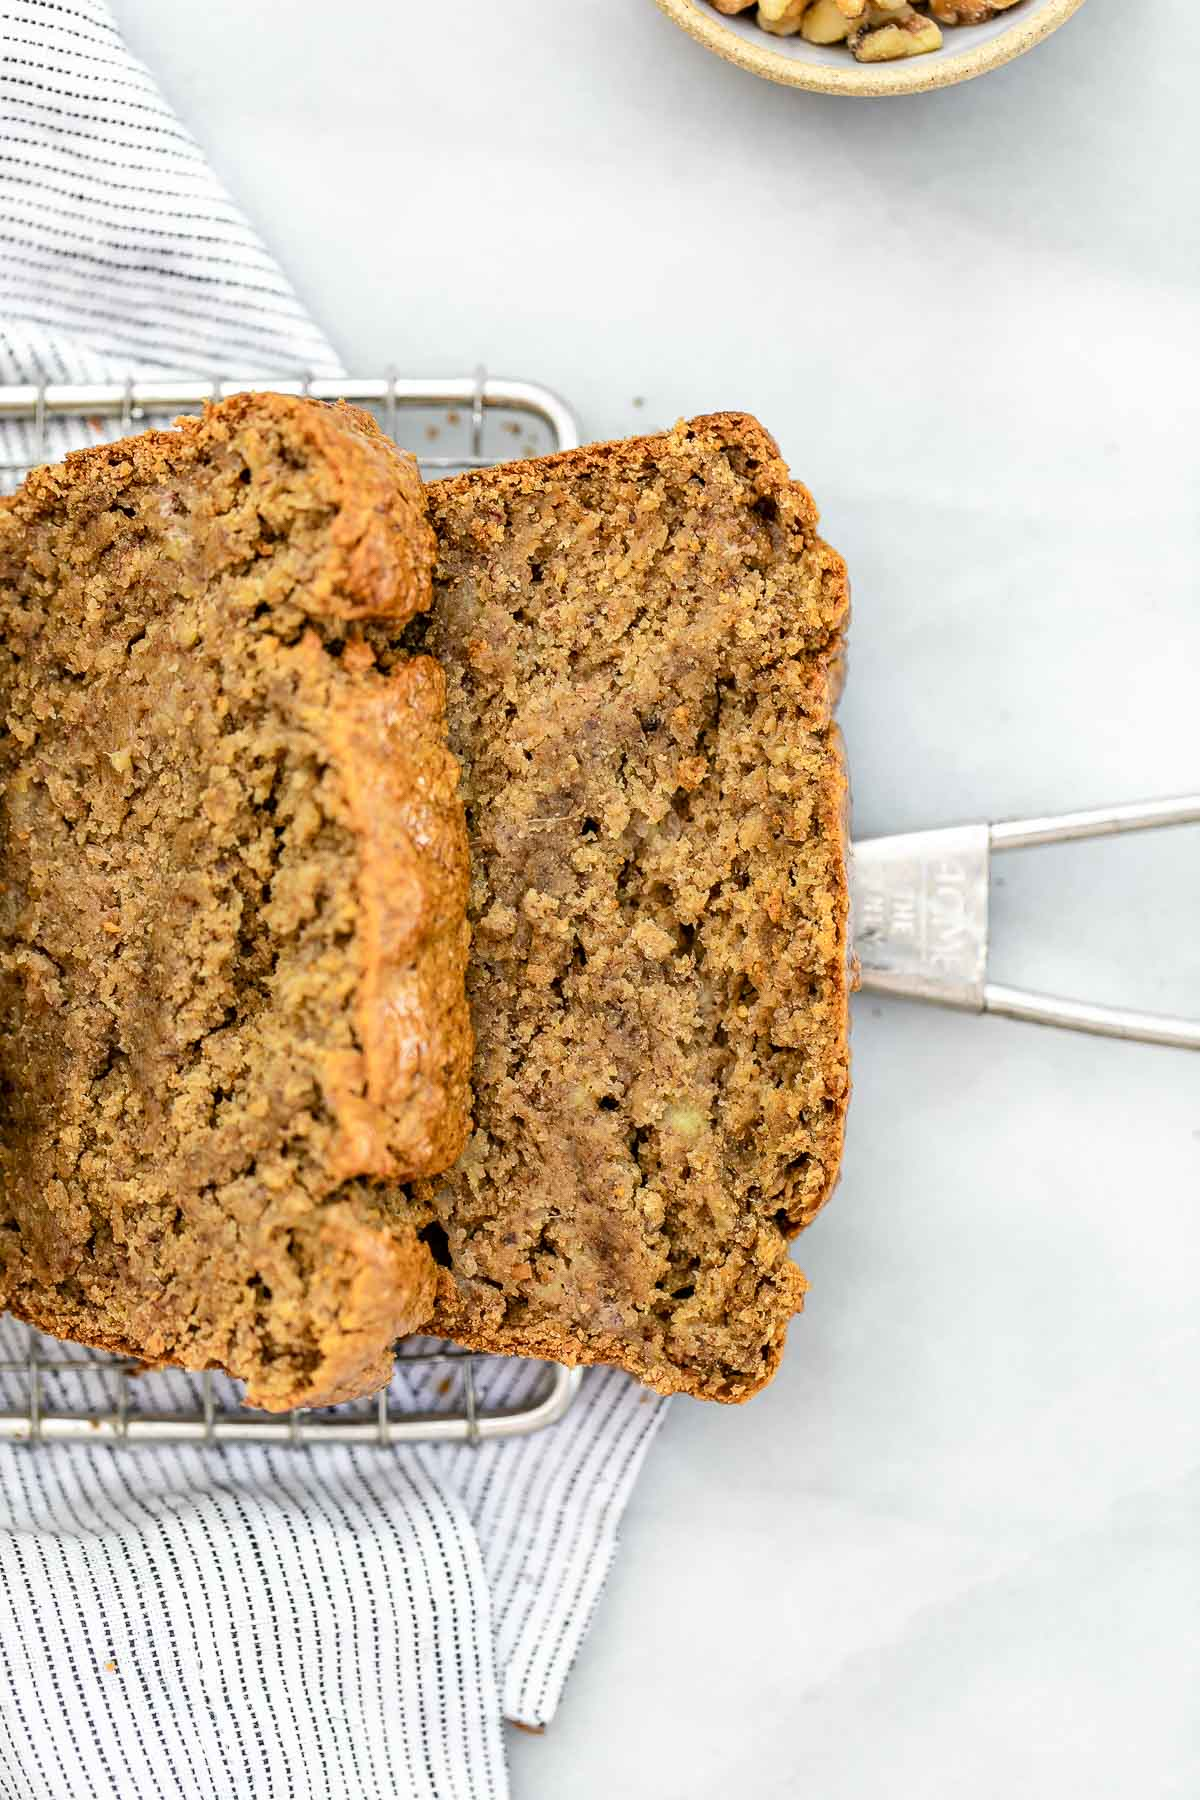 Two slices of gluten free banana bread lying on a cooling rack.